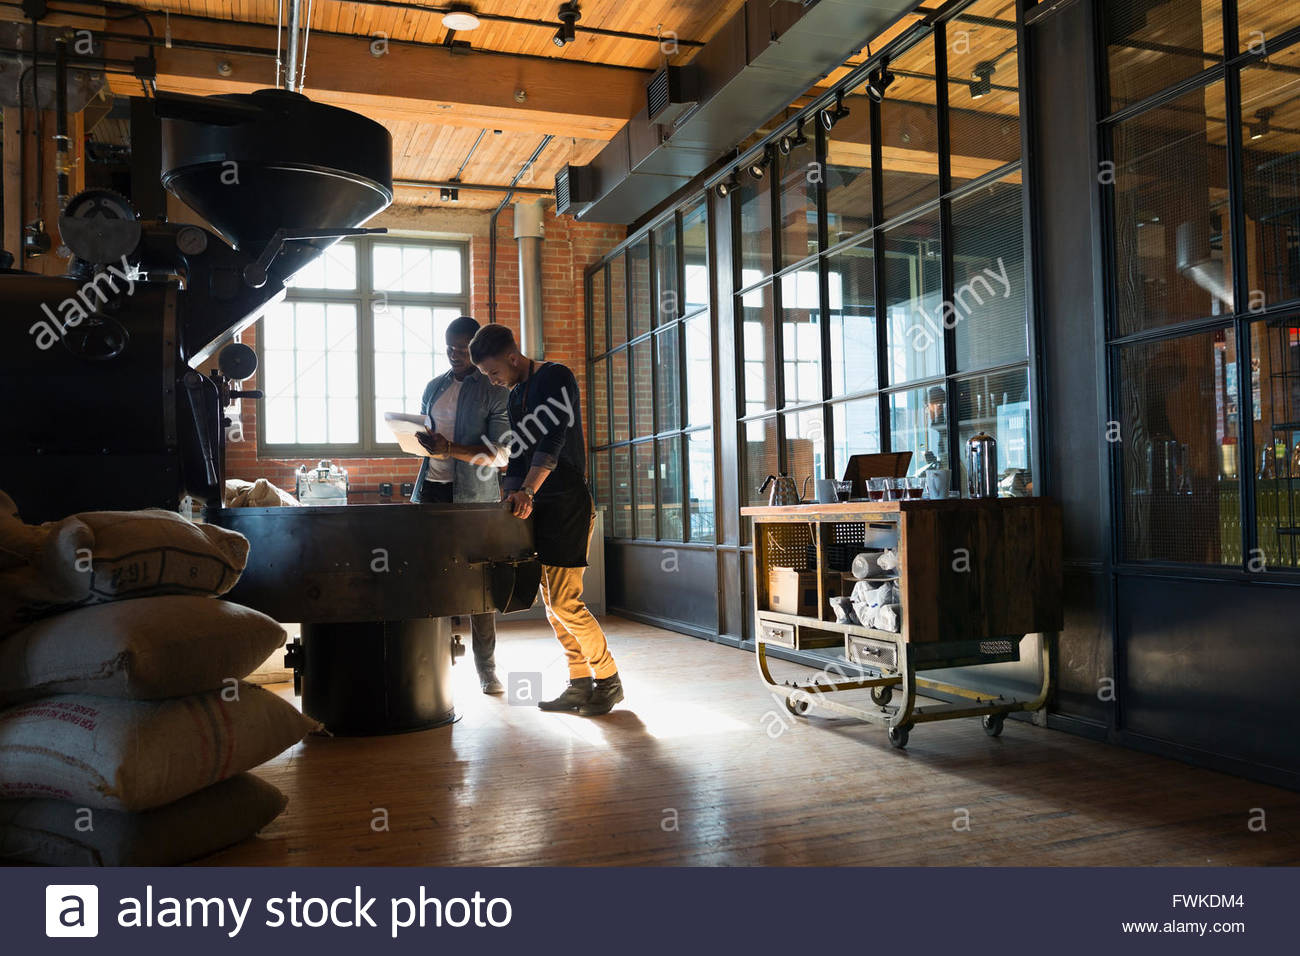 Coffee roasters working at coffee roasting machine - Stock Image